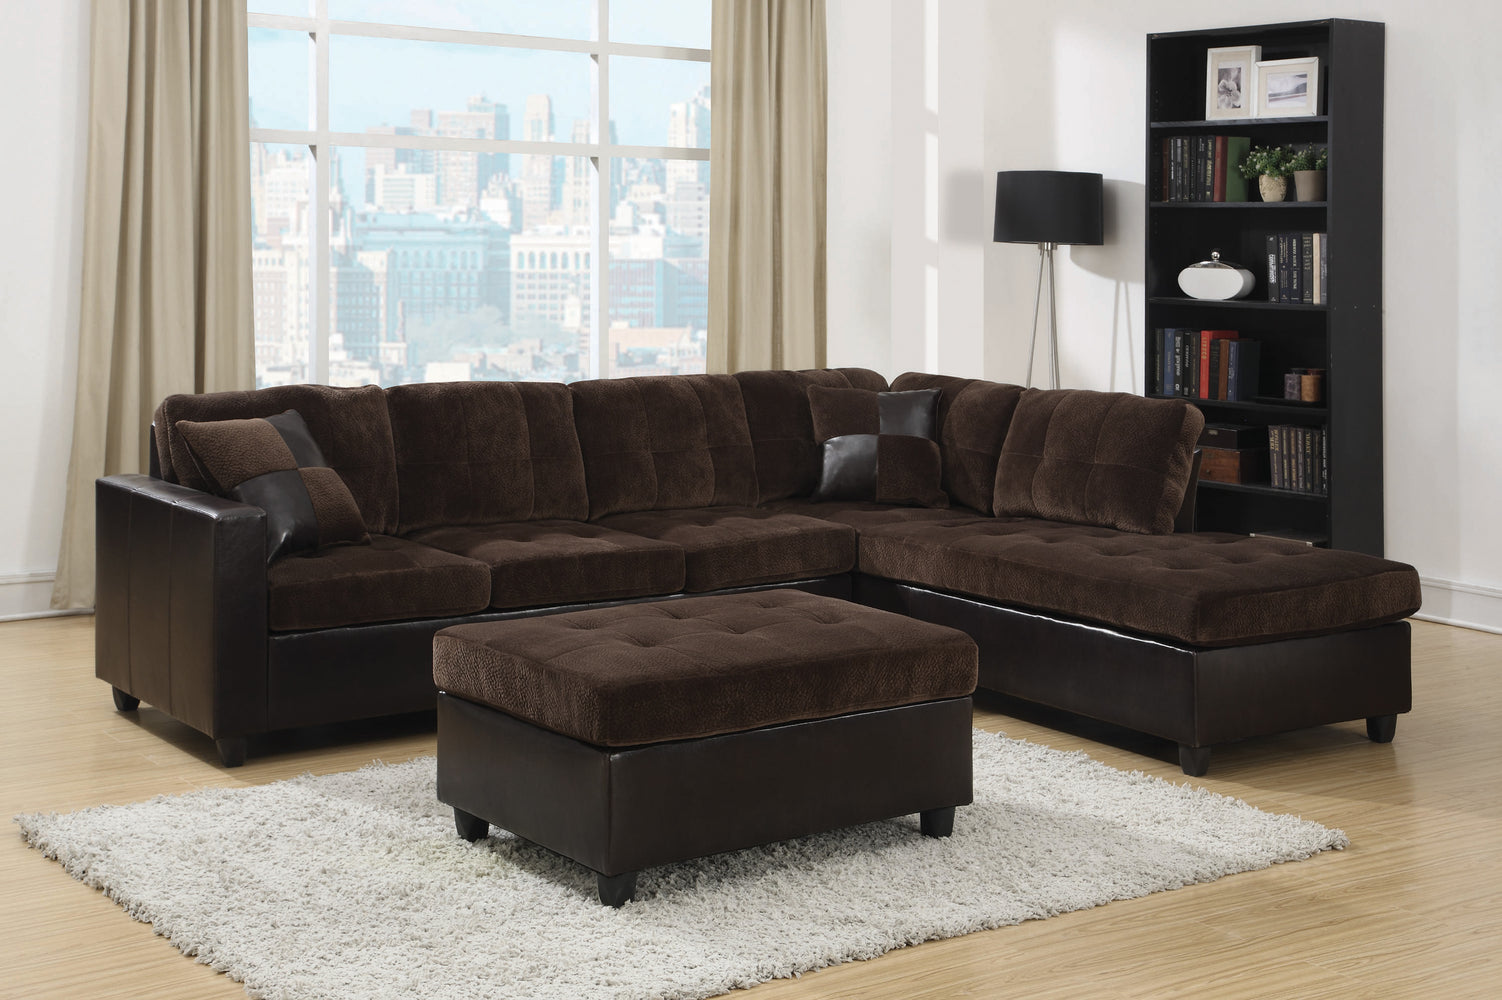 Mallory Tufted Upholstered Sectional Dark Chocolate